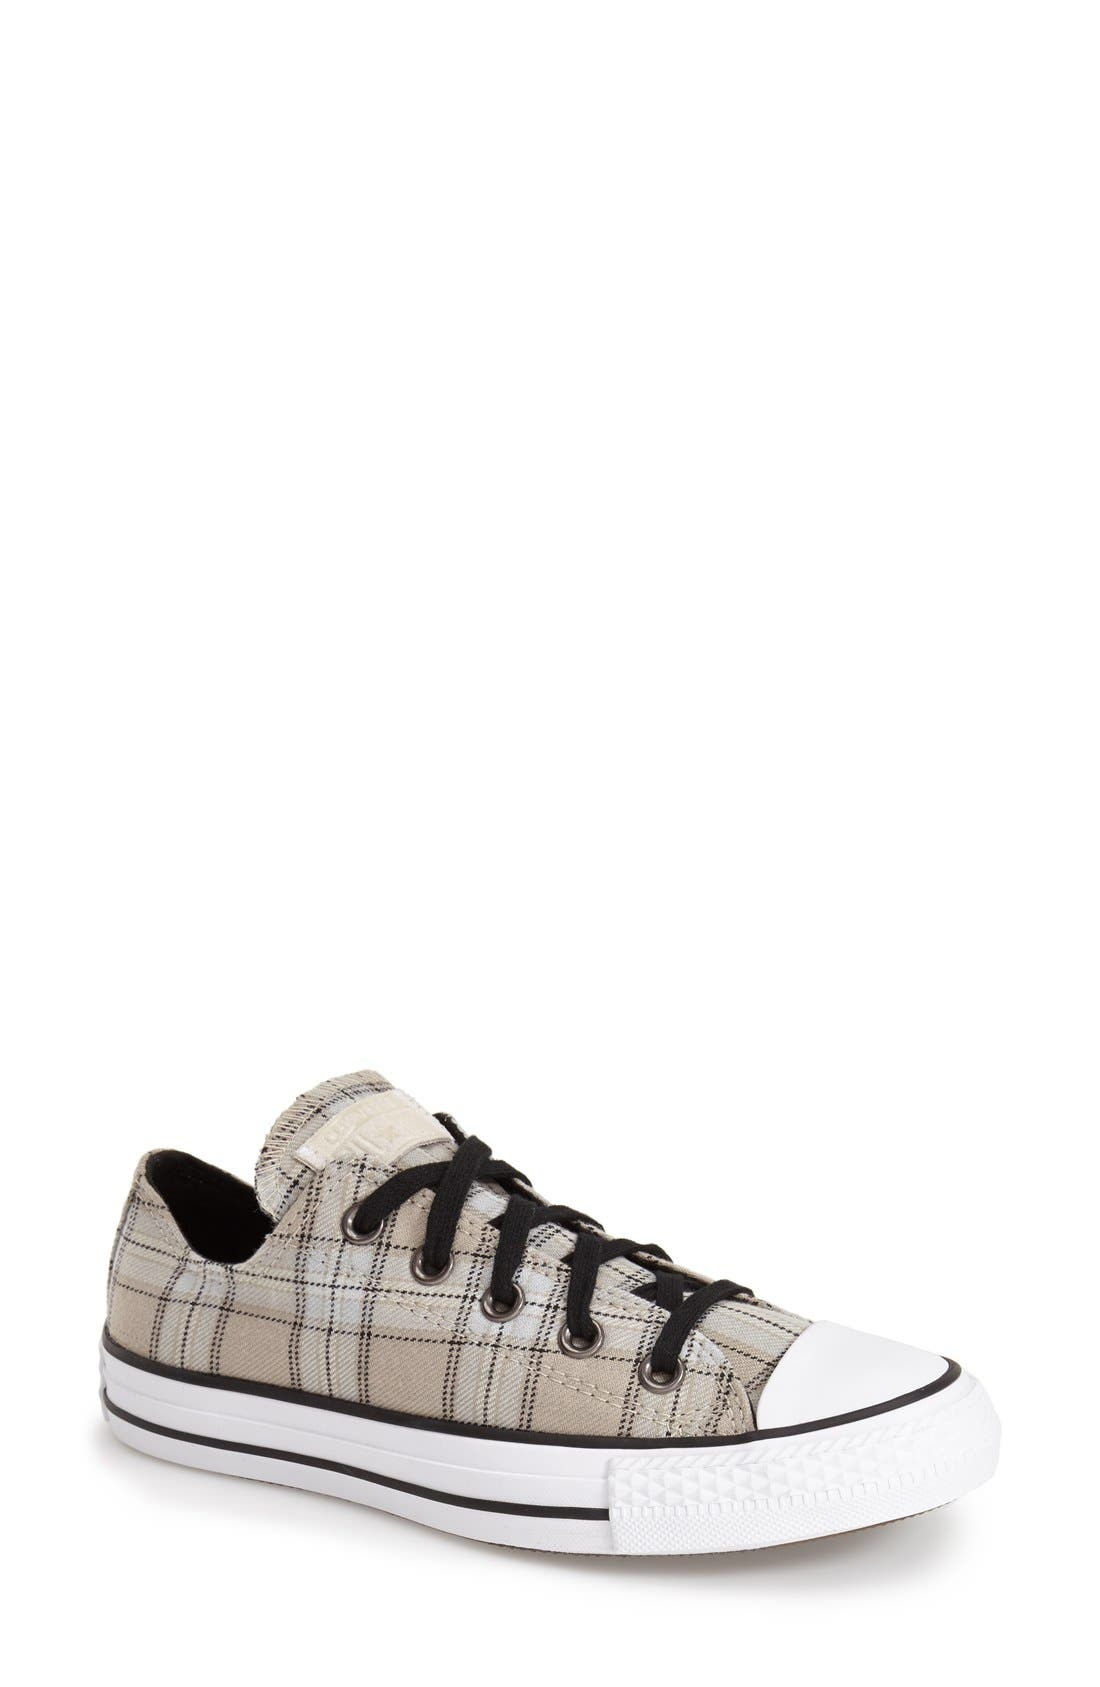 Chuck Taylor<sup>®</sup> All Star<sup>®</sup> Plaid Low Top Sneaker, Main, color, 250